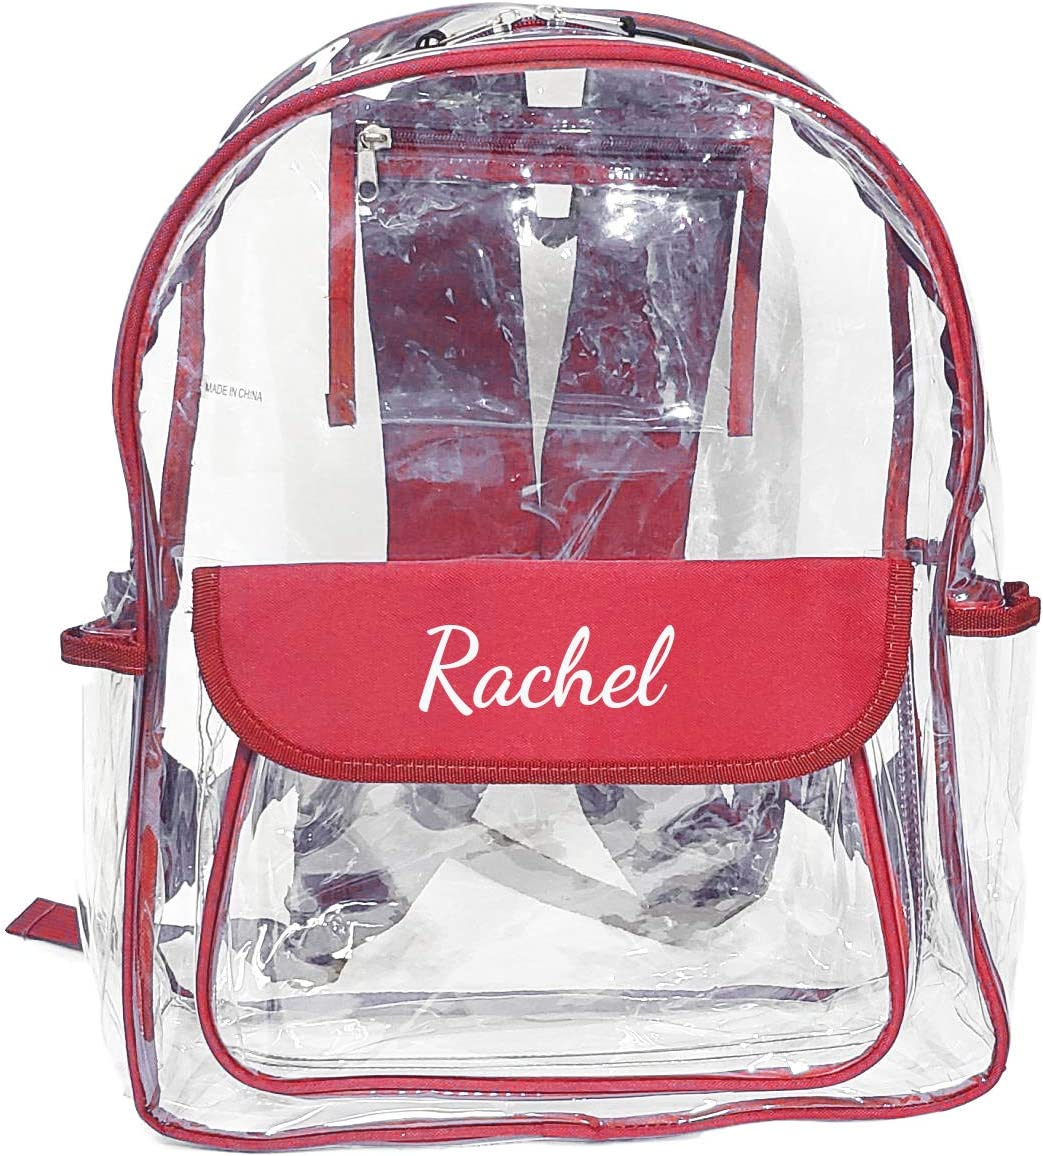 Custom Personalized Vinyl Transparent Clear Backpack Security Travel Sport Events Embroidered Name with Red Trim